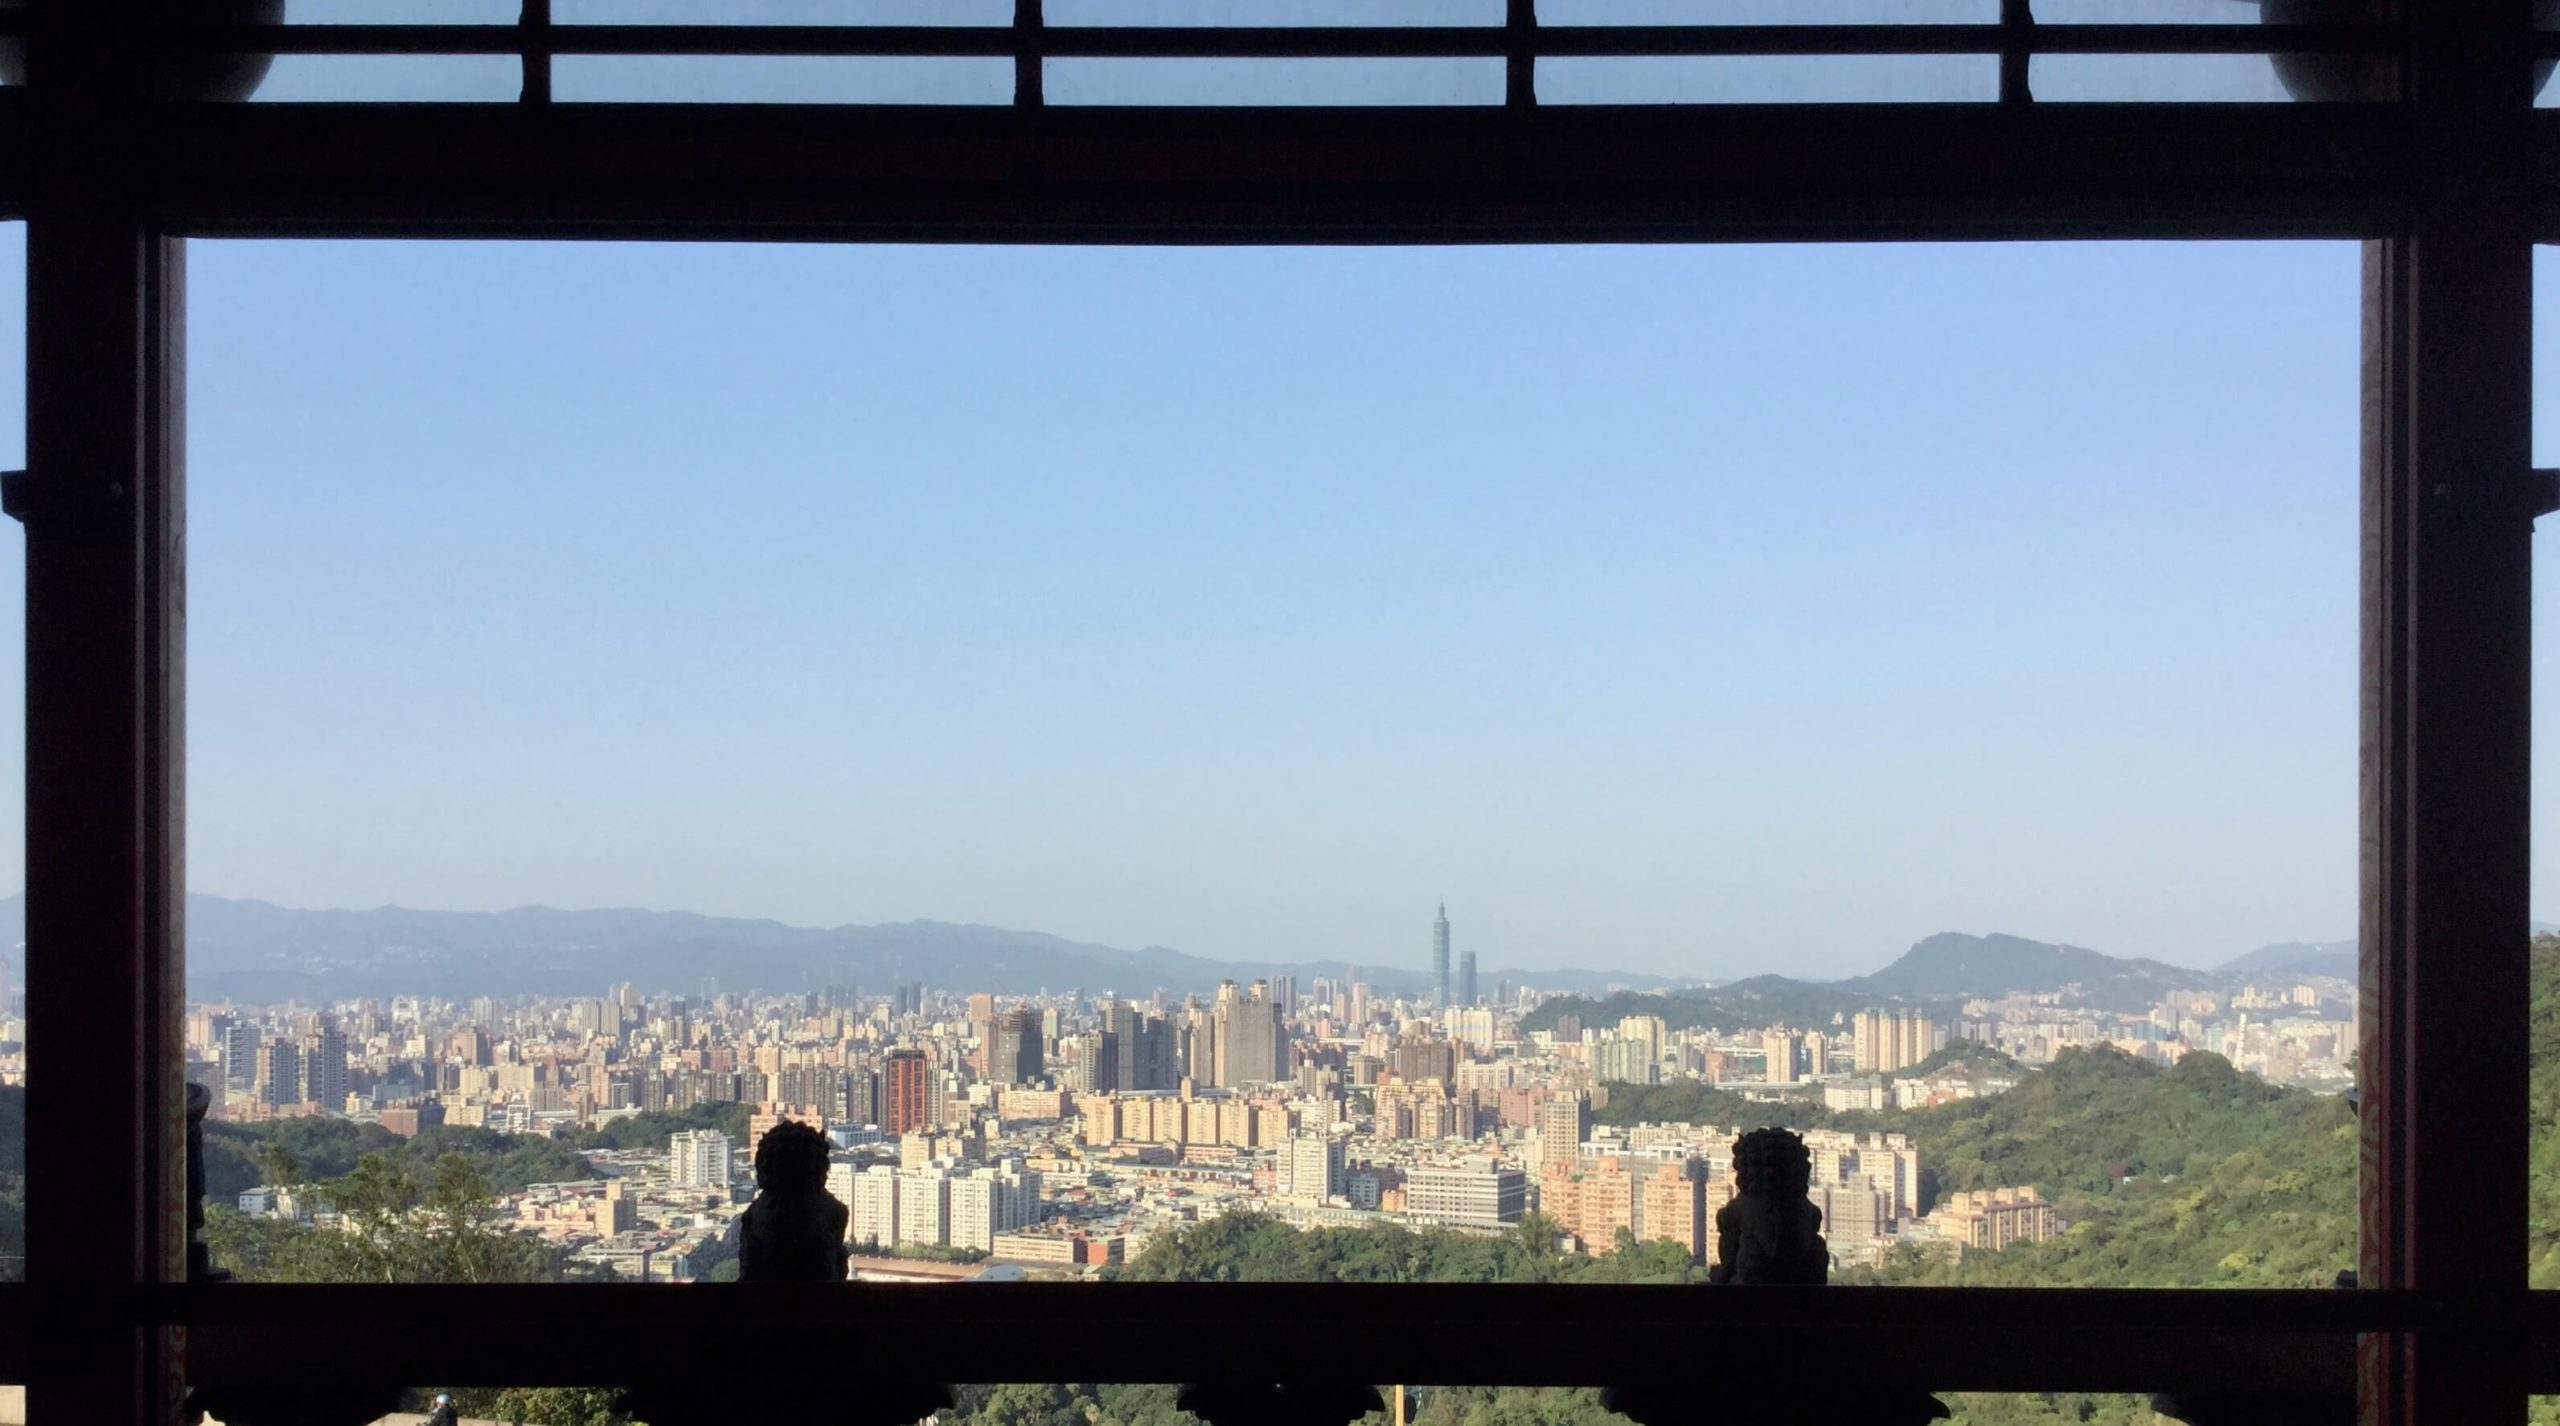 Taipei view from the Earth God Temple